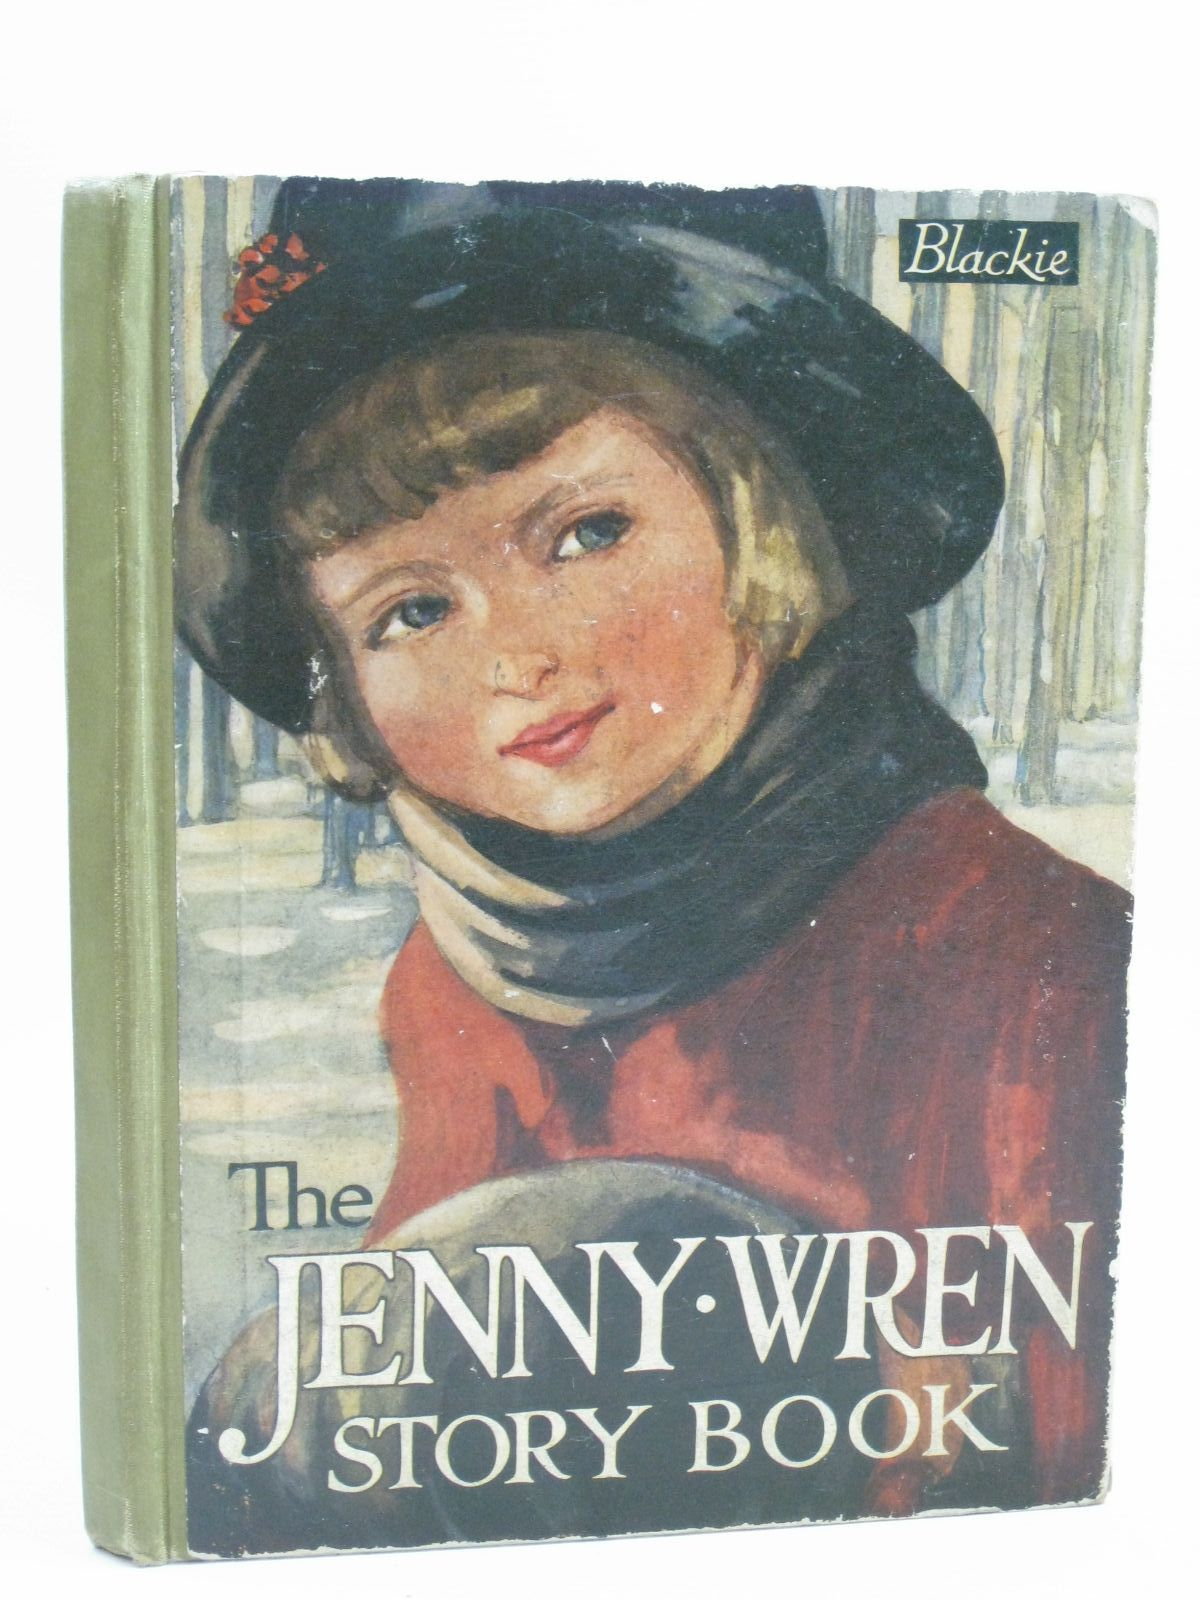 Photo of THE JENNY WREN STORY BOOK illustrated by Attwell, Mabel Lucie Brock, H.M. et al.,  published by Blackie & Son Ltd. (STOCK CODE: 1405196)  for sale by Stella & Rose's Books